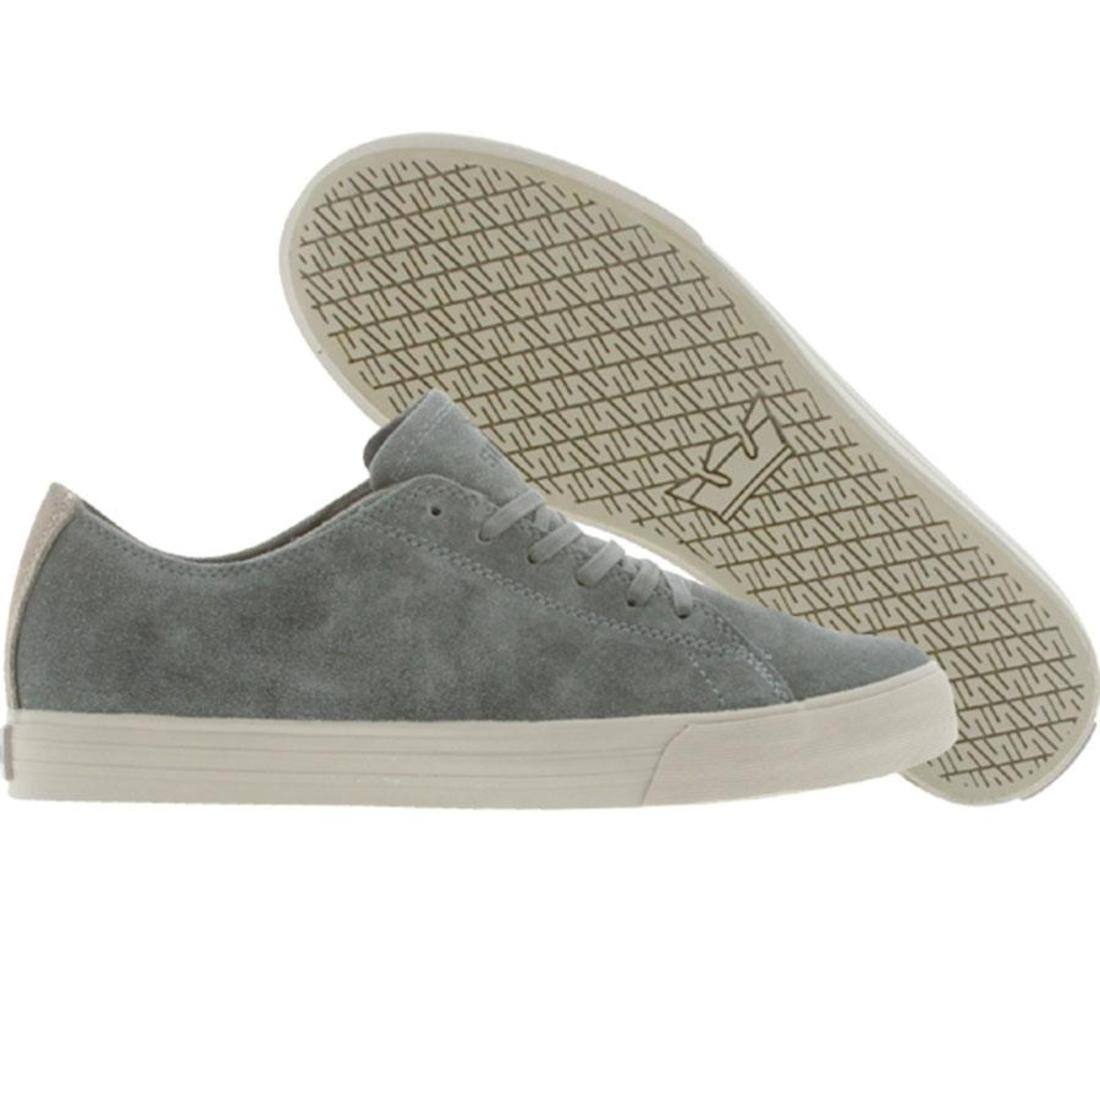 81f4f9a1839a Supra Thunder Low (grey   warm grey canvas)